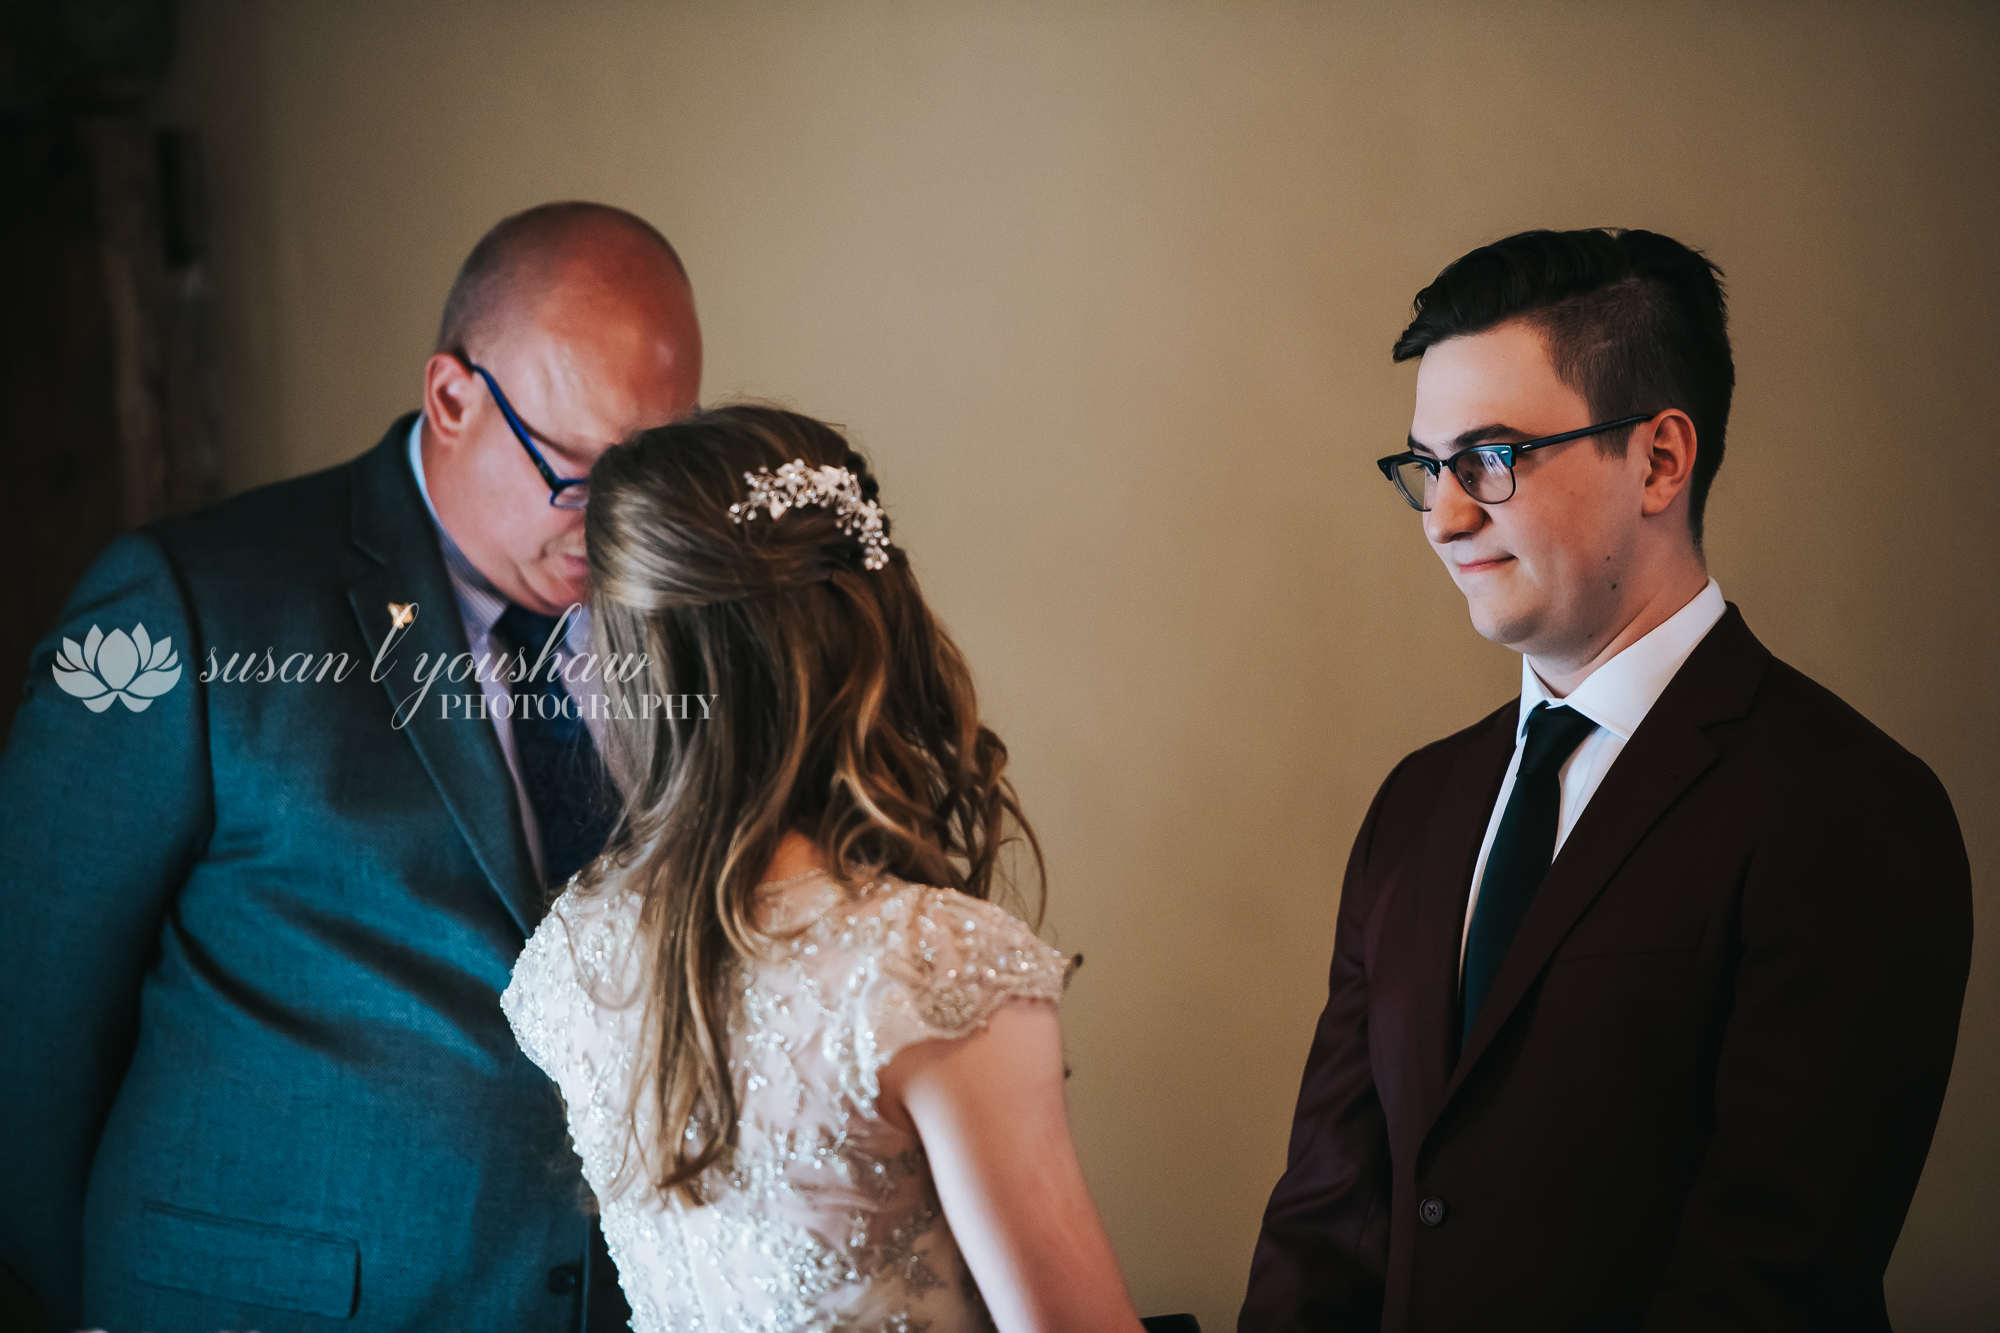 Chynna and John Wedding 05-18-2019 SLY Photography-101.jpg